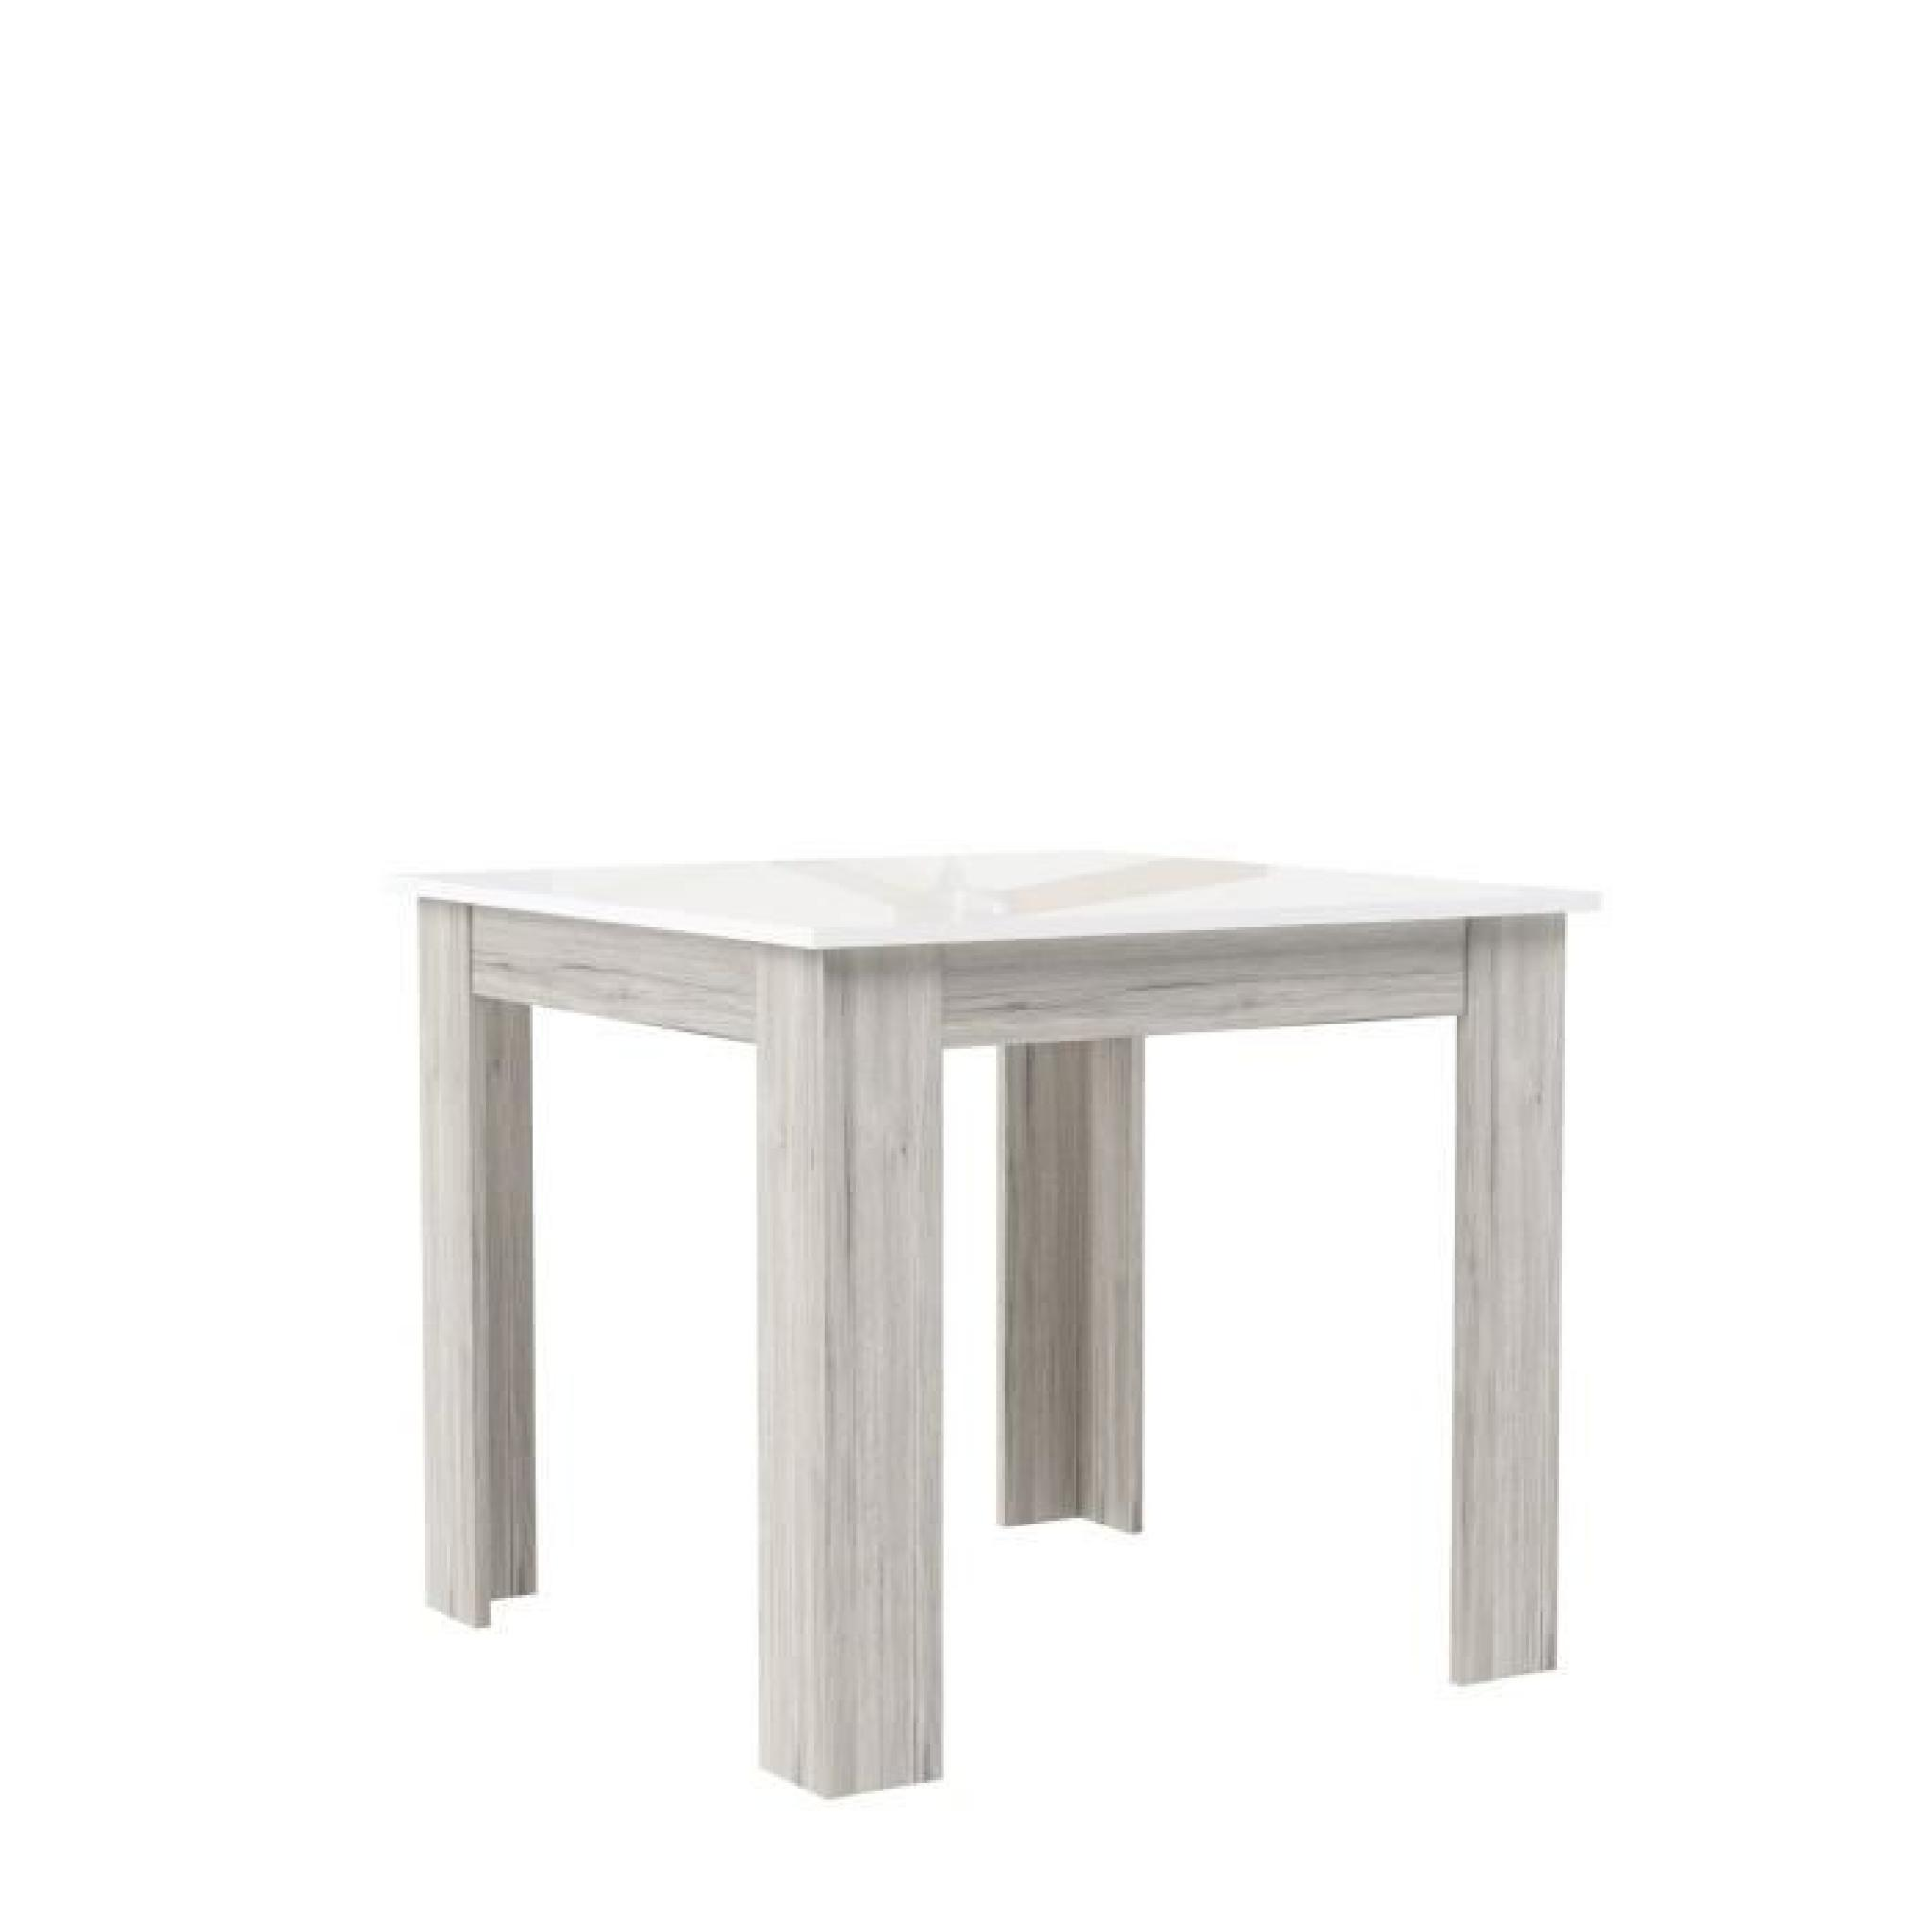 Finlandek table de bar tietti 110x110cm laqu blanc for Table a manger laque blanc pas cher